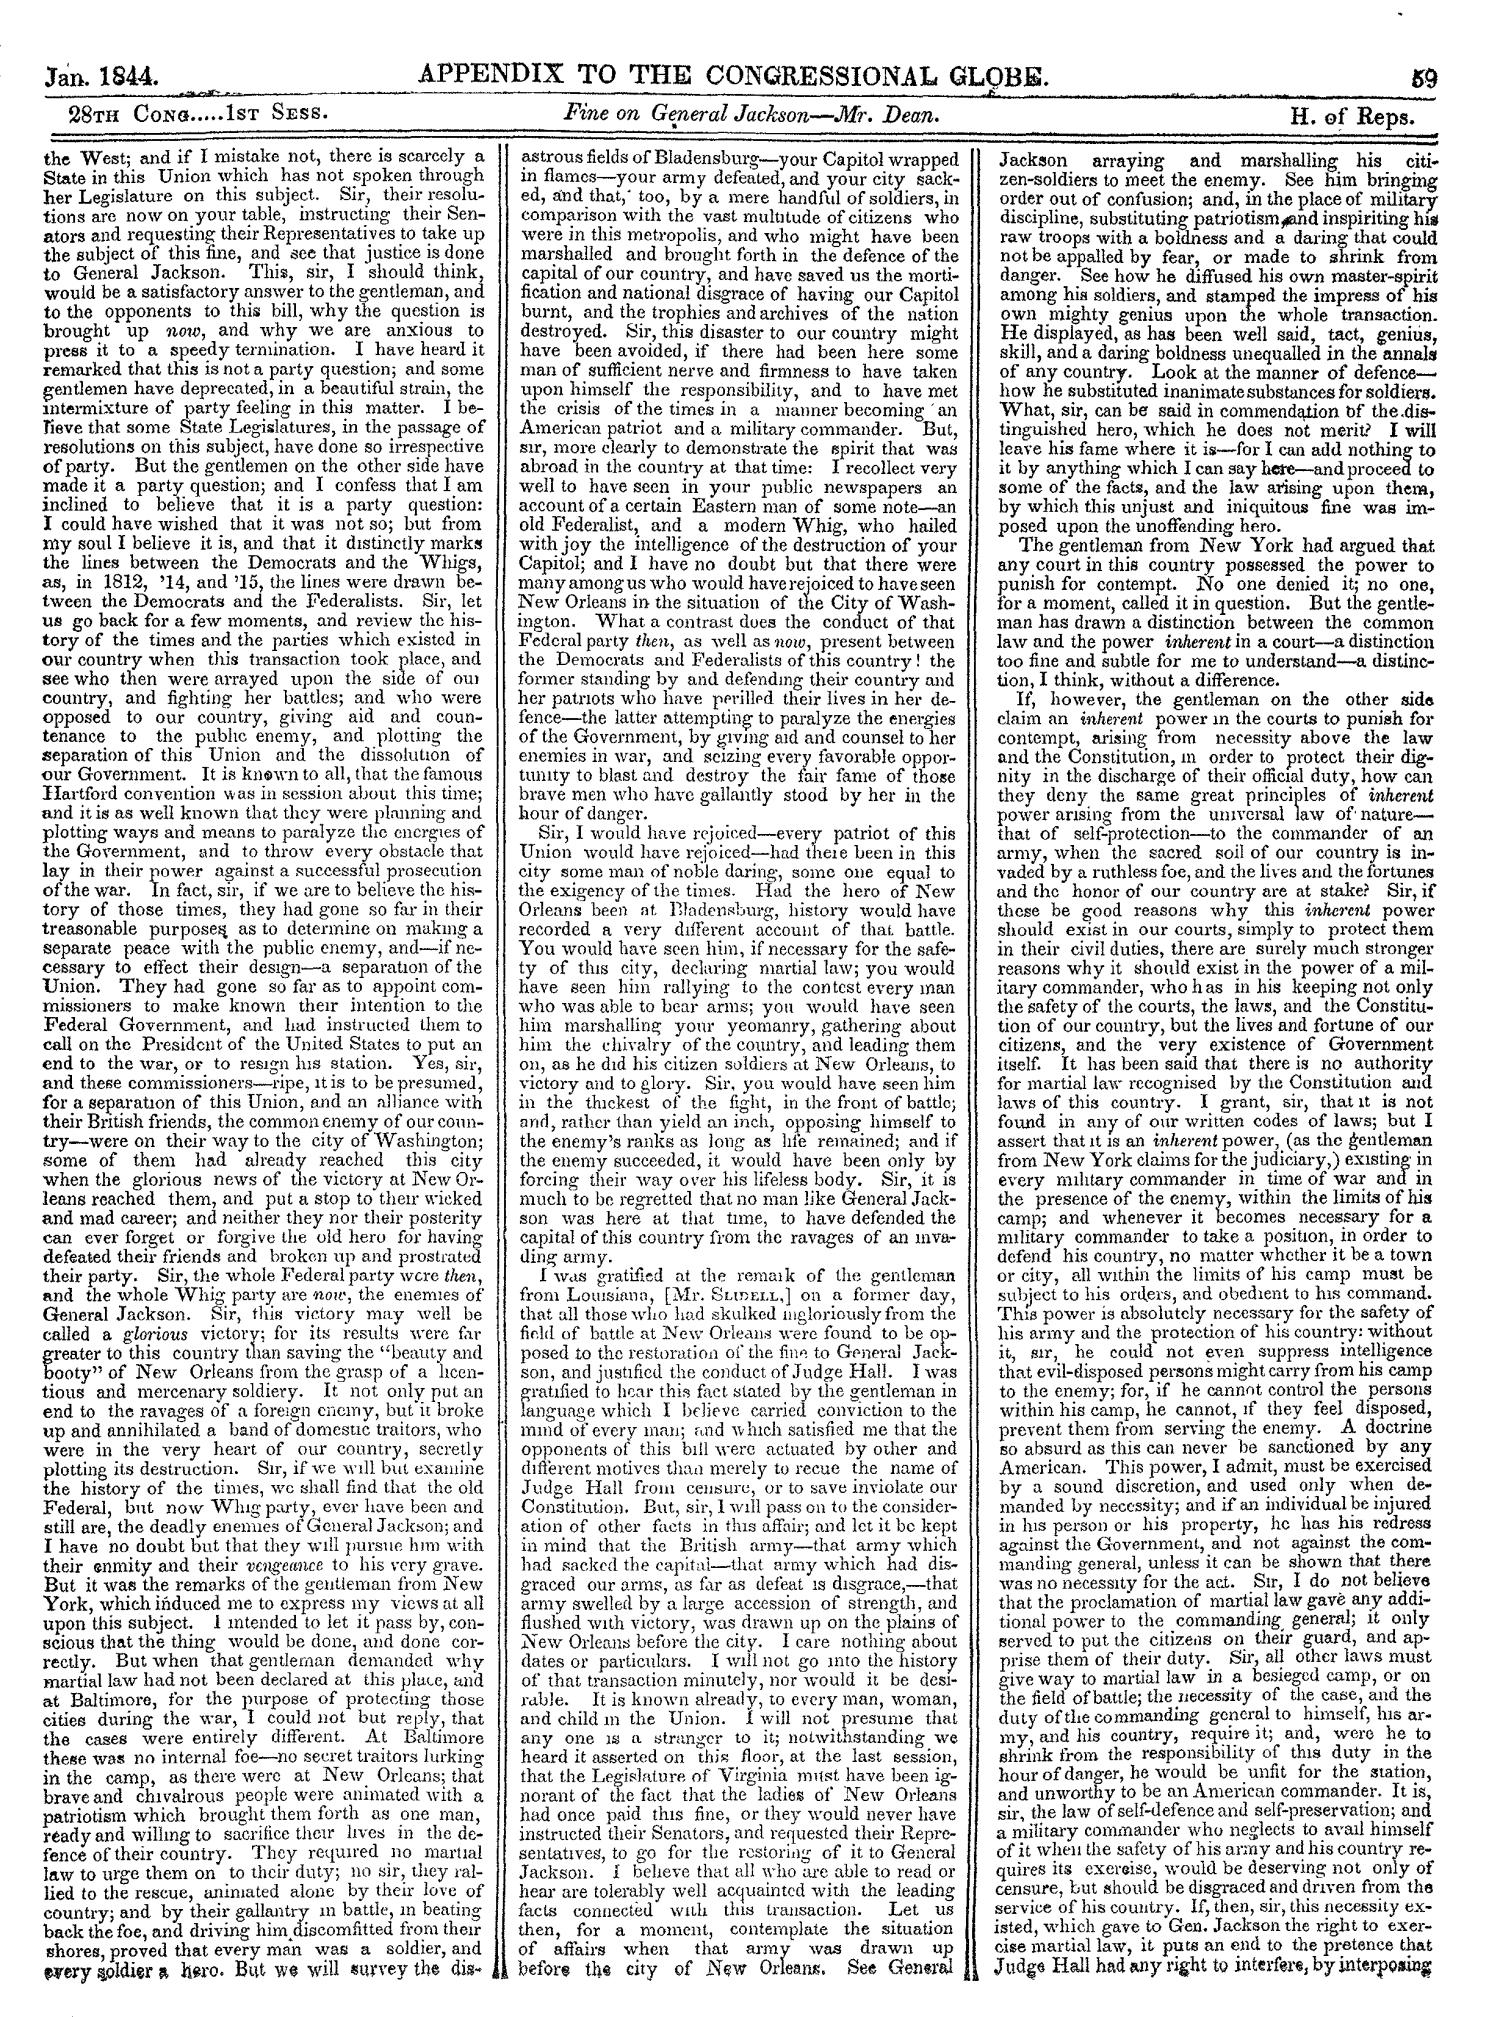 The Congressional Globe, Volume 13, Part 2: Twenty-Eighth Congress, First Session                                                                                                      59